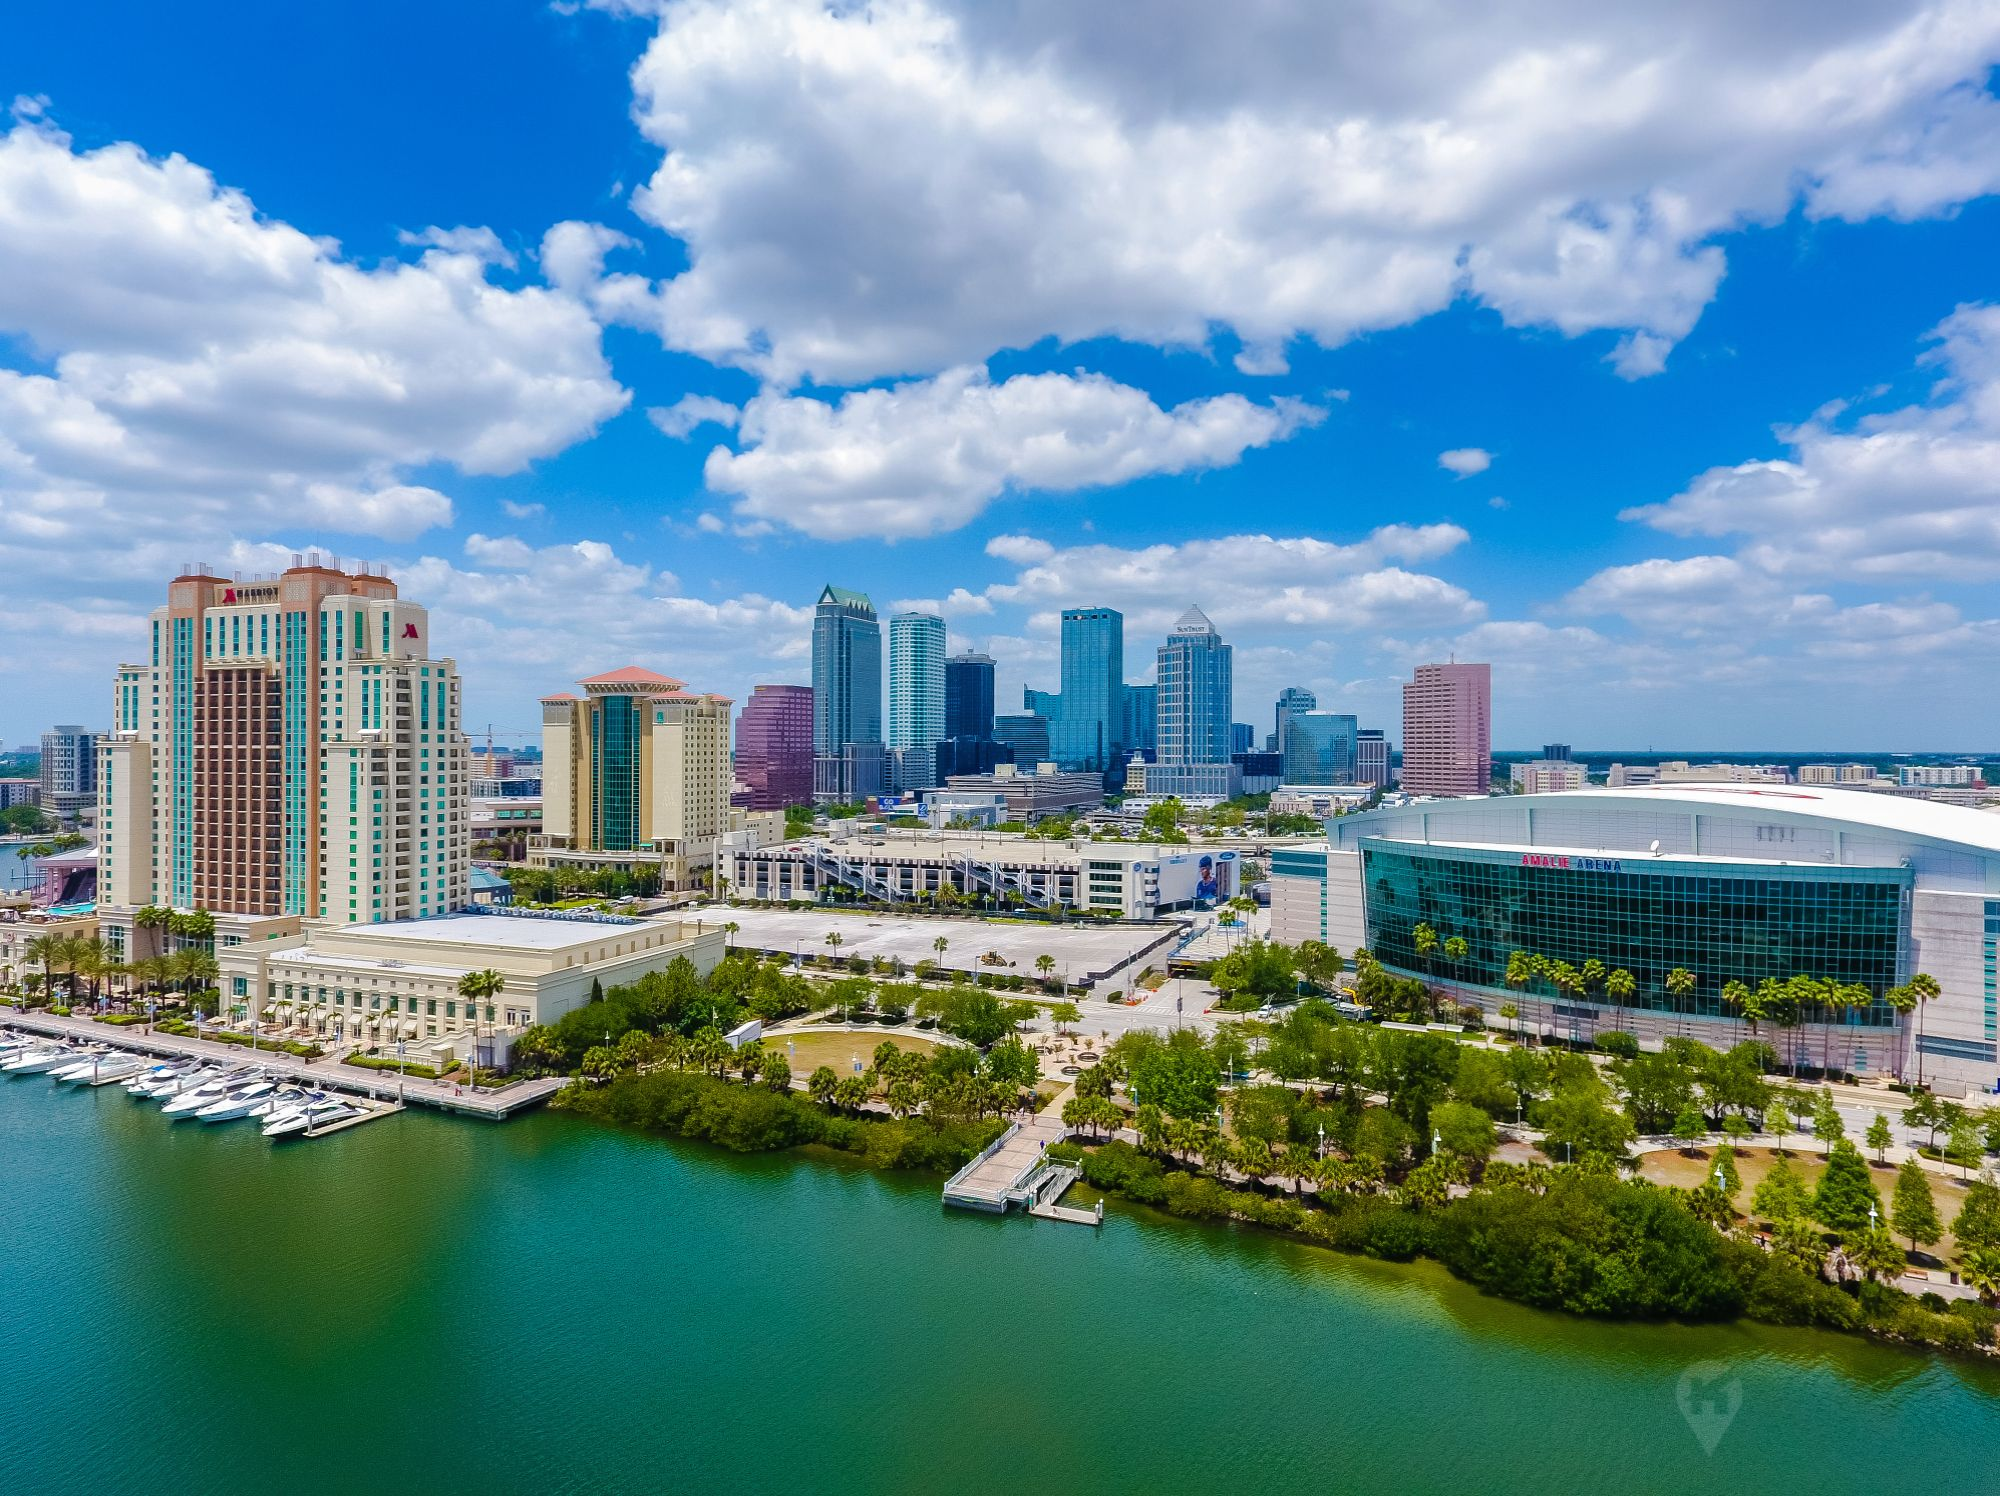 Amalie arena and downtown tampa 2018 downtown tampa